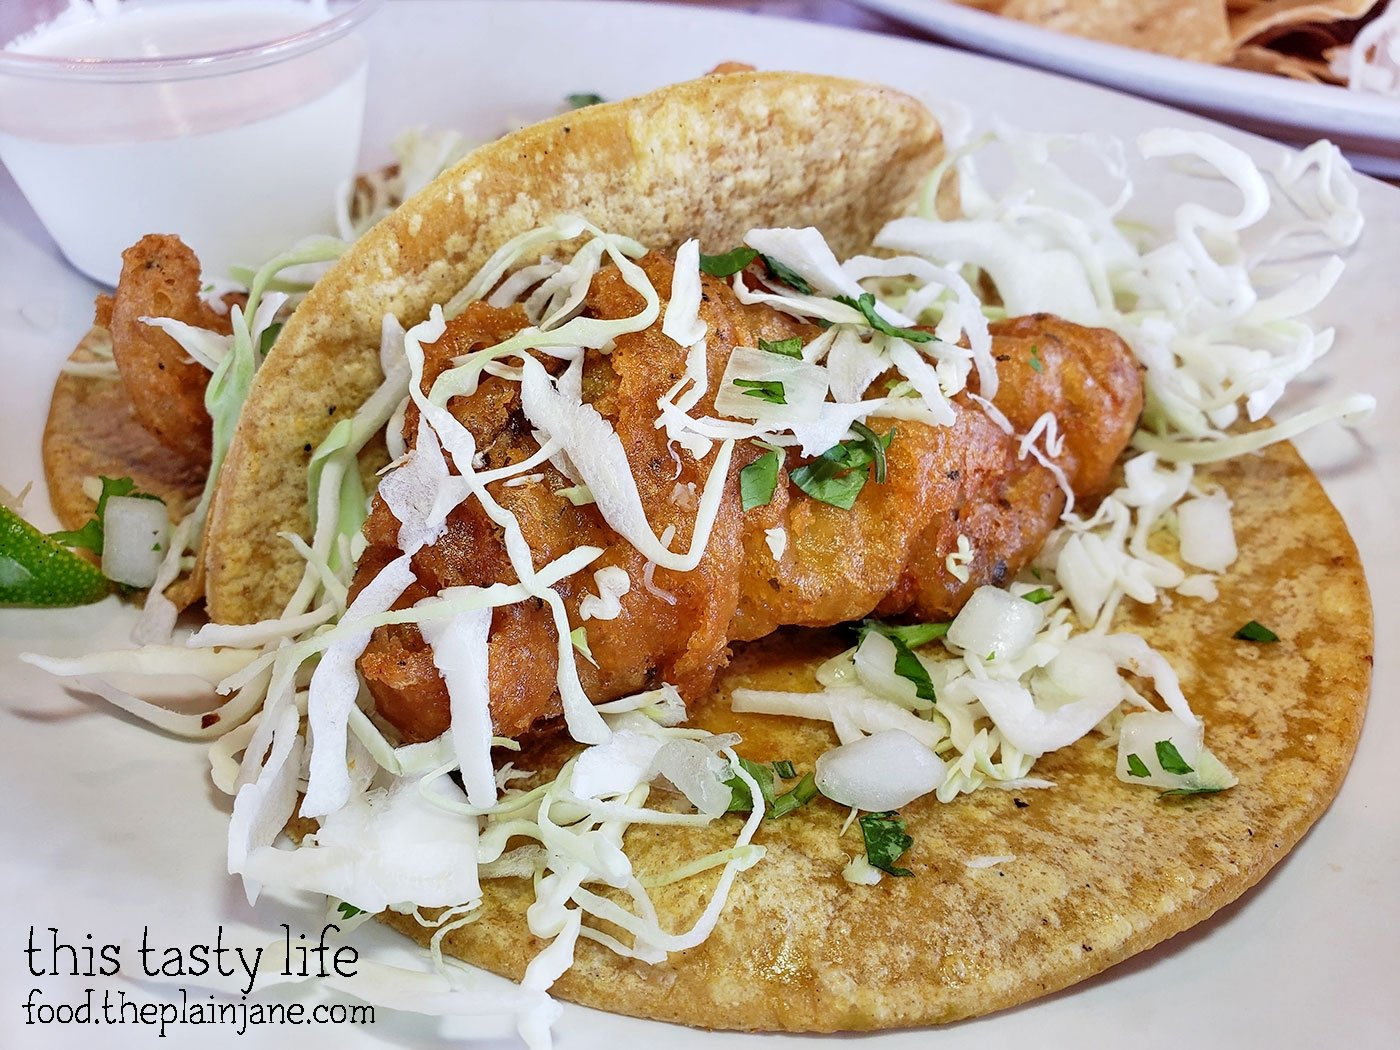 Tacos Burritos And Free Lunch Bags At Rubio S Coastal Grill This Tasty Life